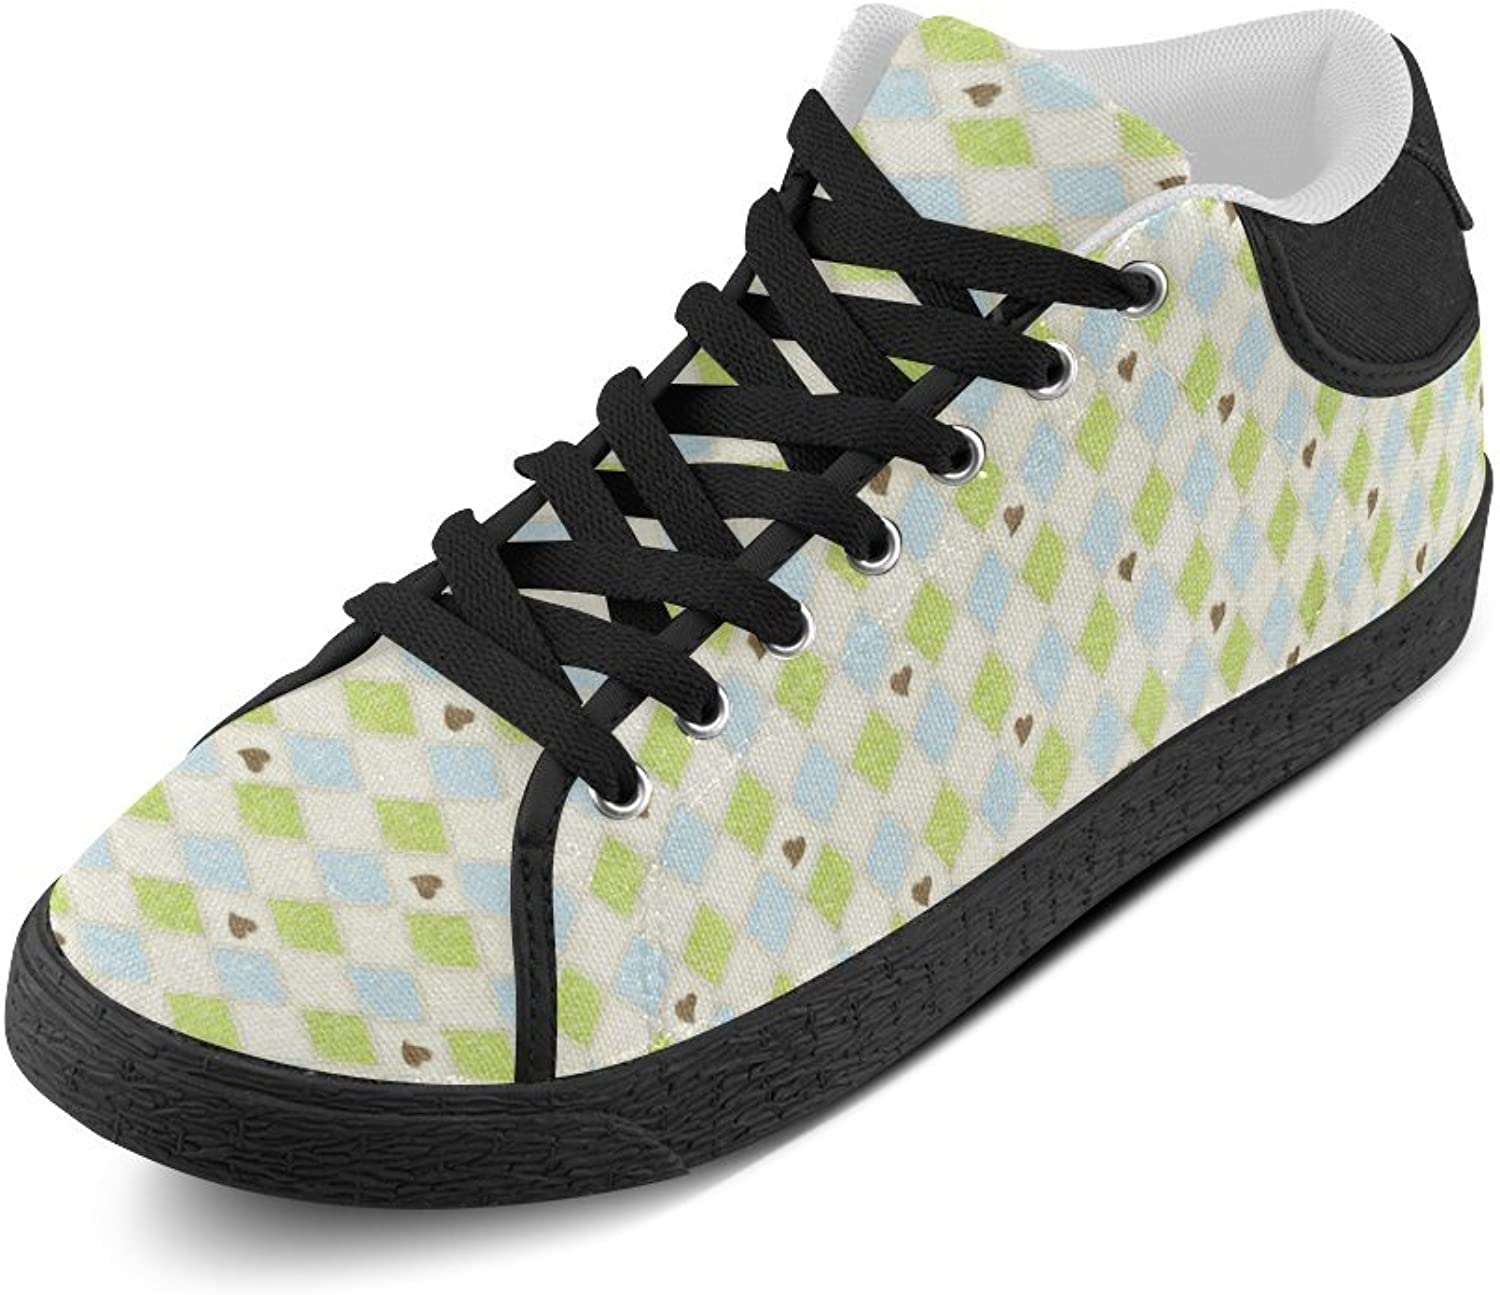 CERLYRUAN Square and Hreat Canvas Chukka Canvas Women's shoes